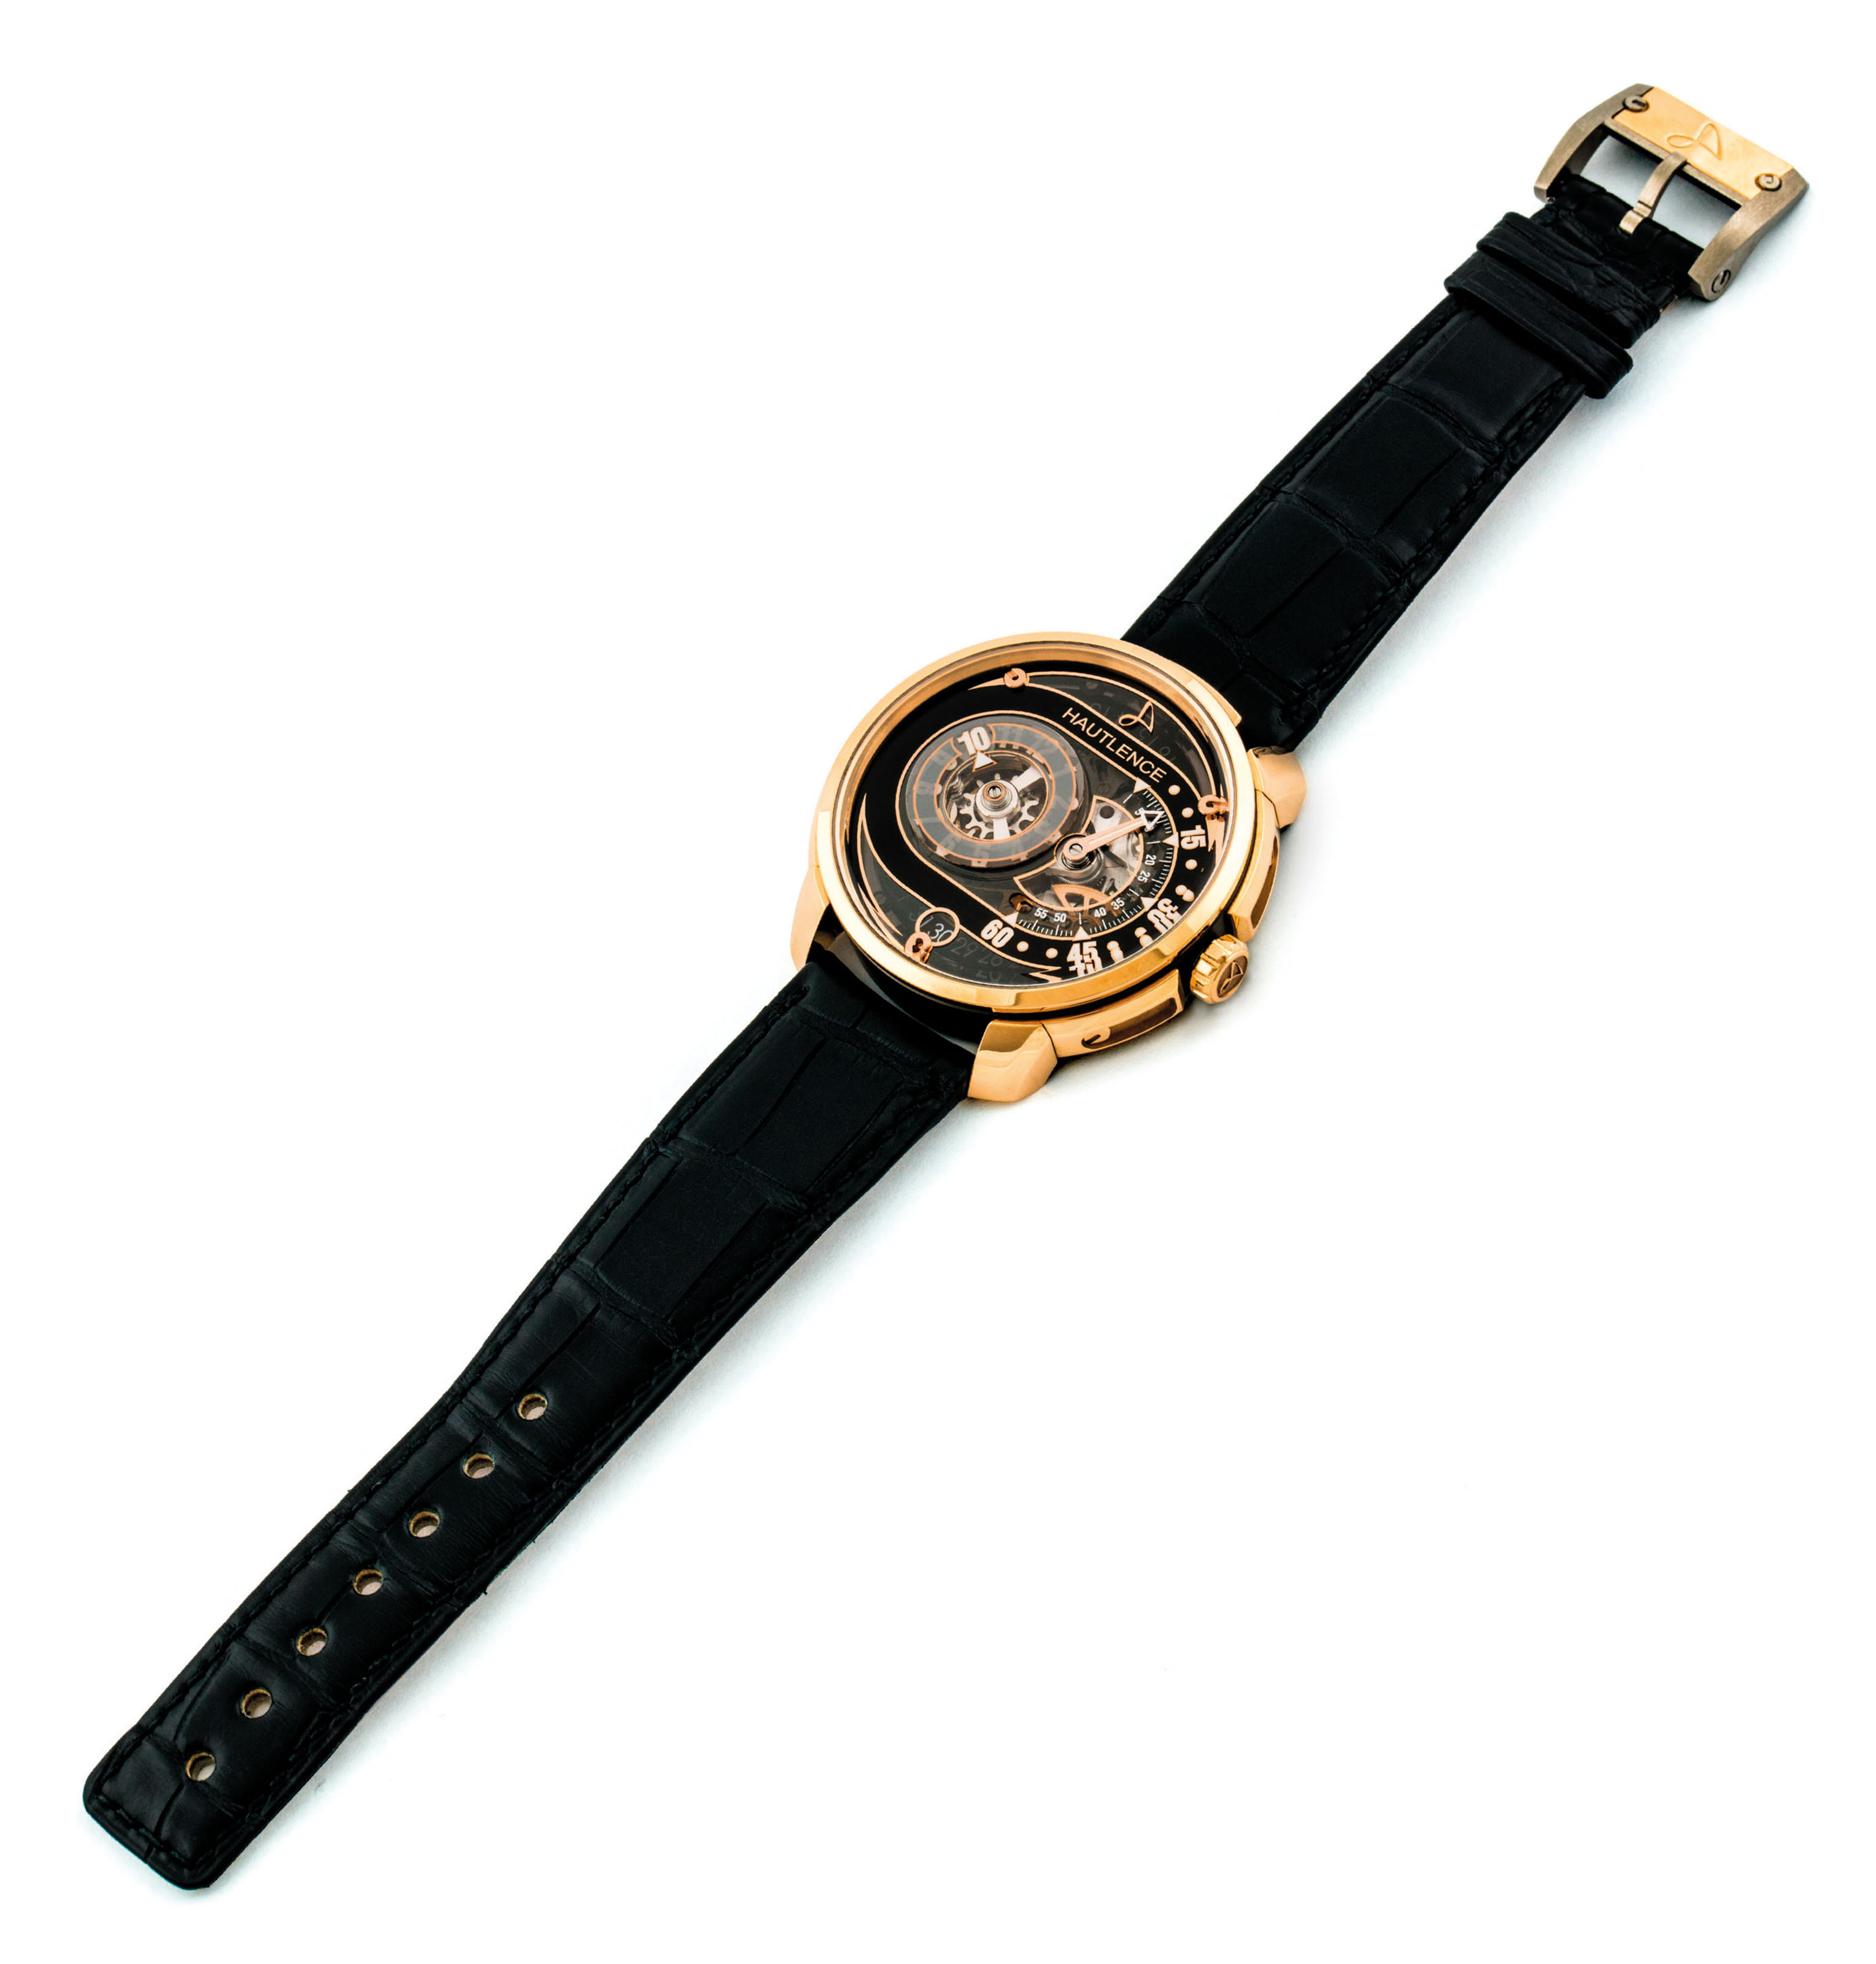 HAUTLENCE. AN 18K PINK GOLD AND DLC COATED TITANIUN SKELETONISED JUMP HOUR WRISTWATCH WITH RETROGRADE MINUTES AND DATE